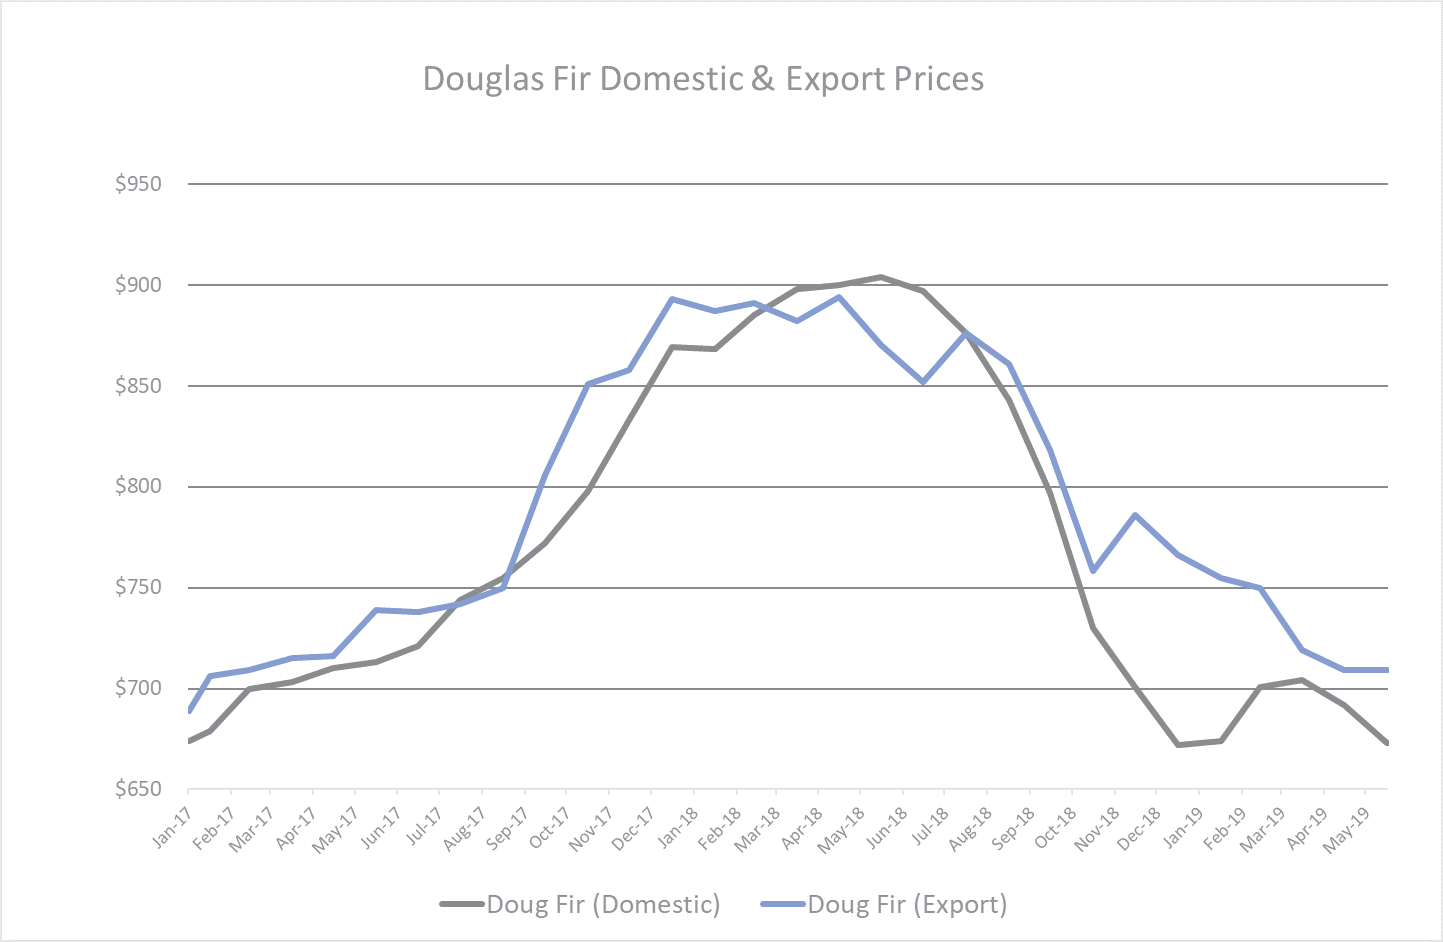 Doug_Fir_Prices_Aug_2019